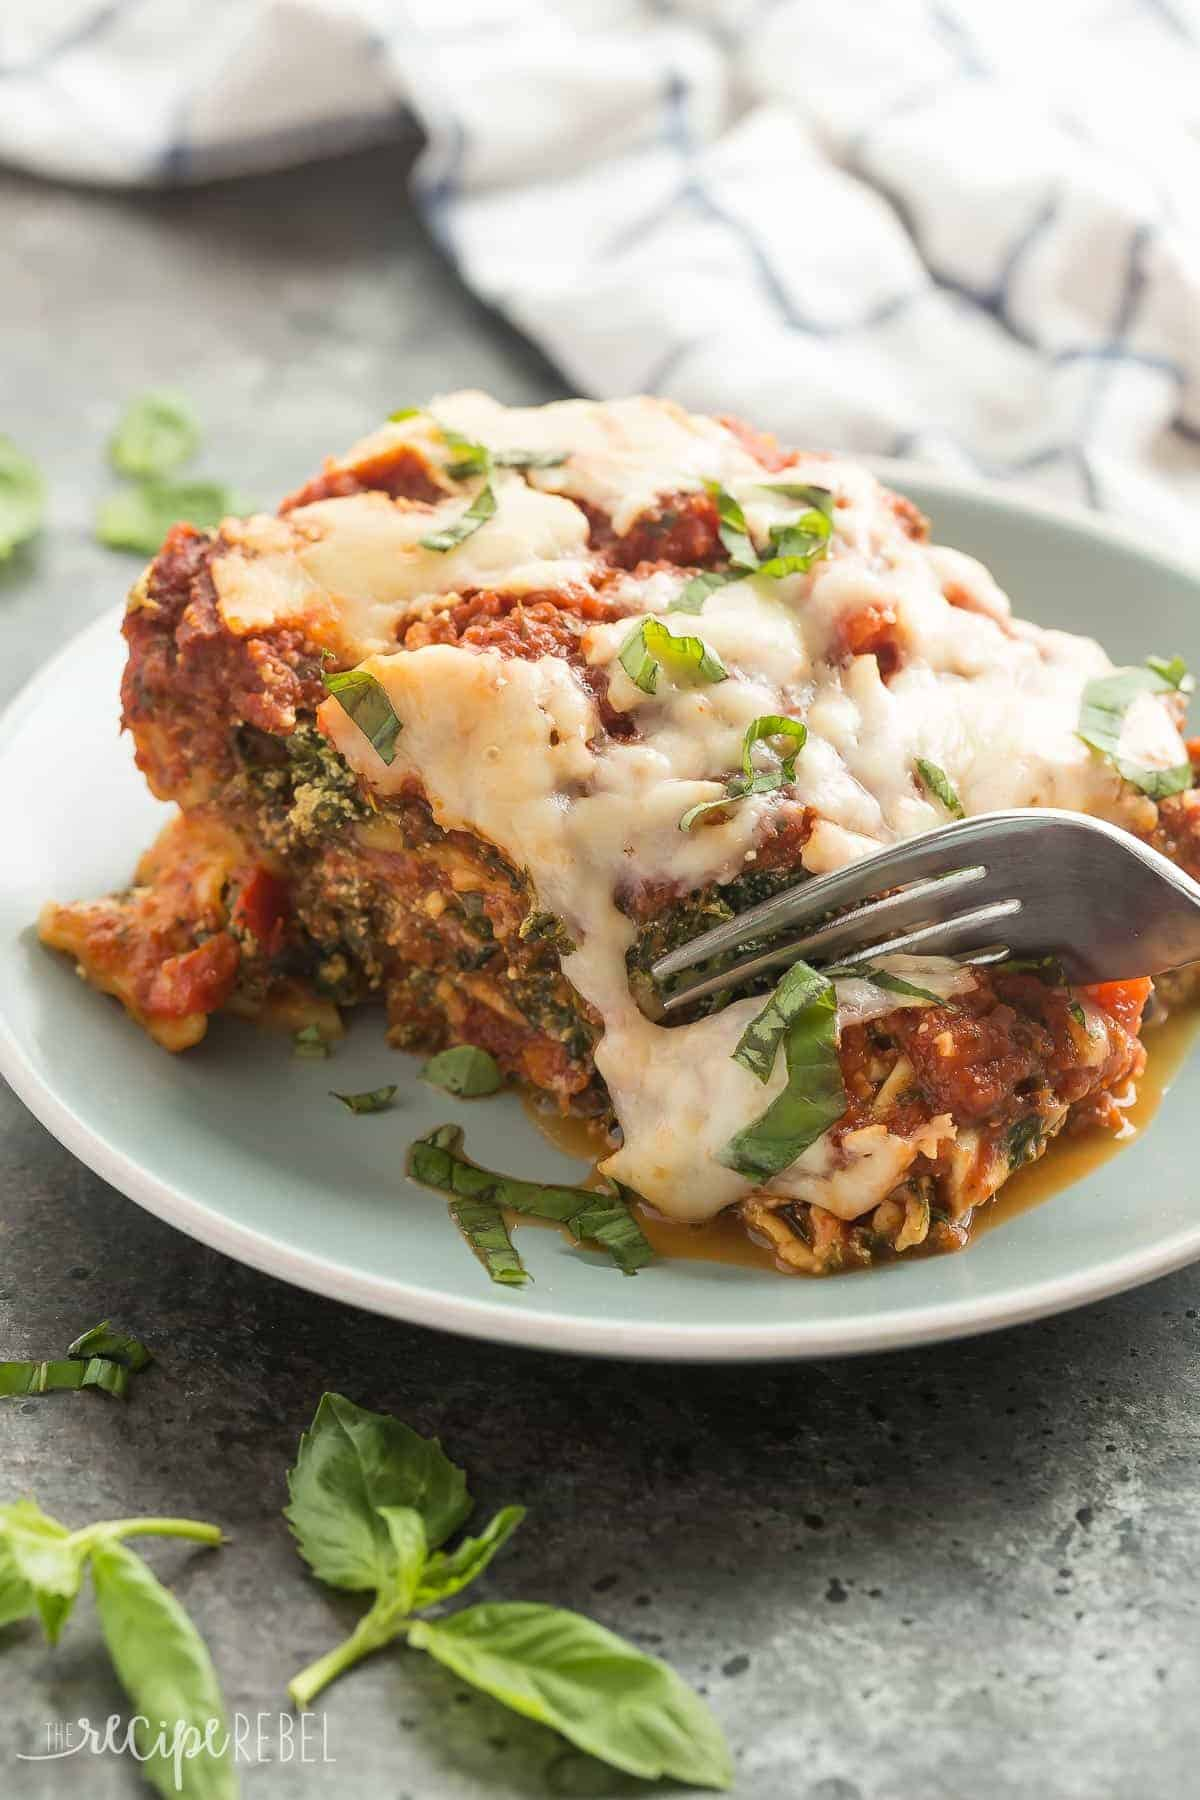 slow cooker spinach lasagna on blue plate with fork taking a bite